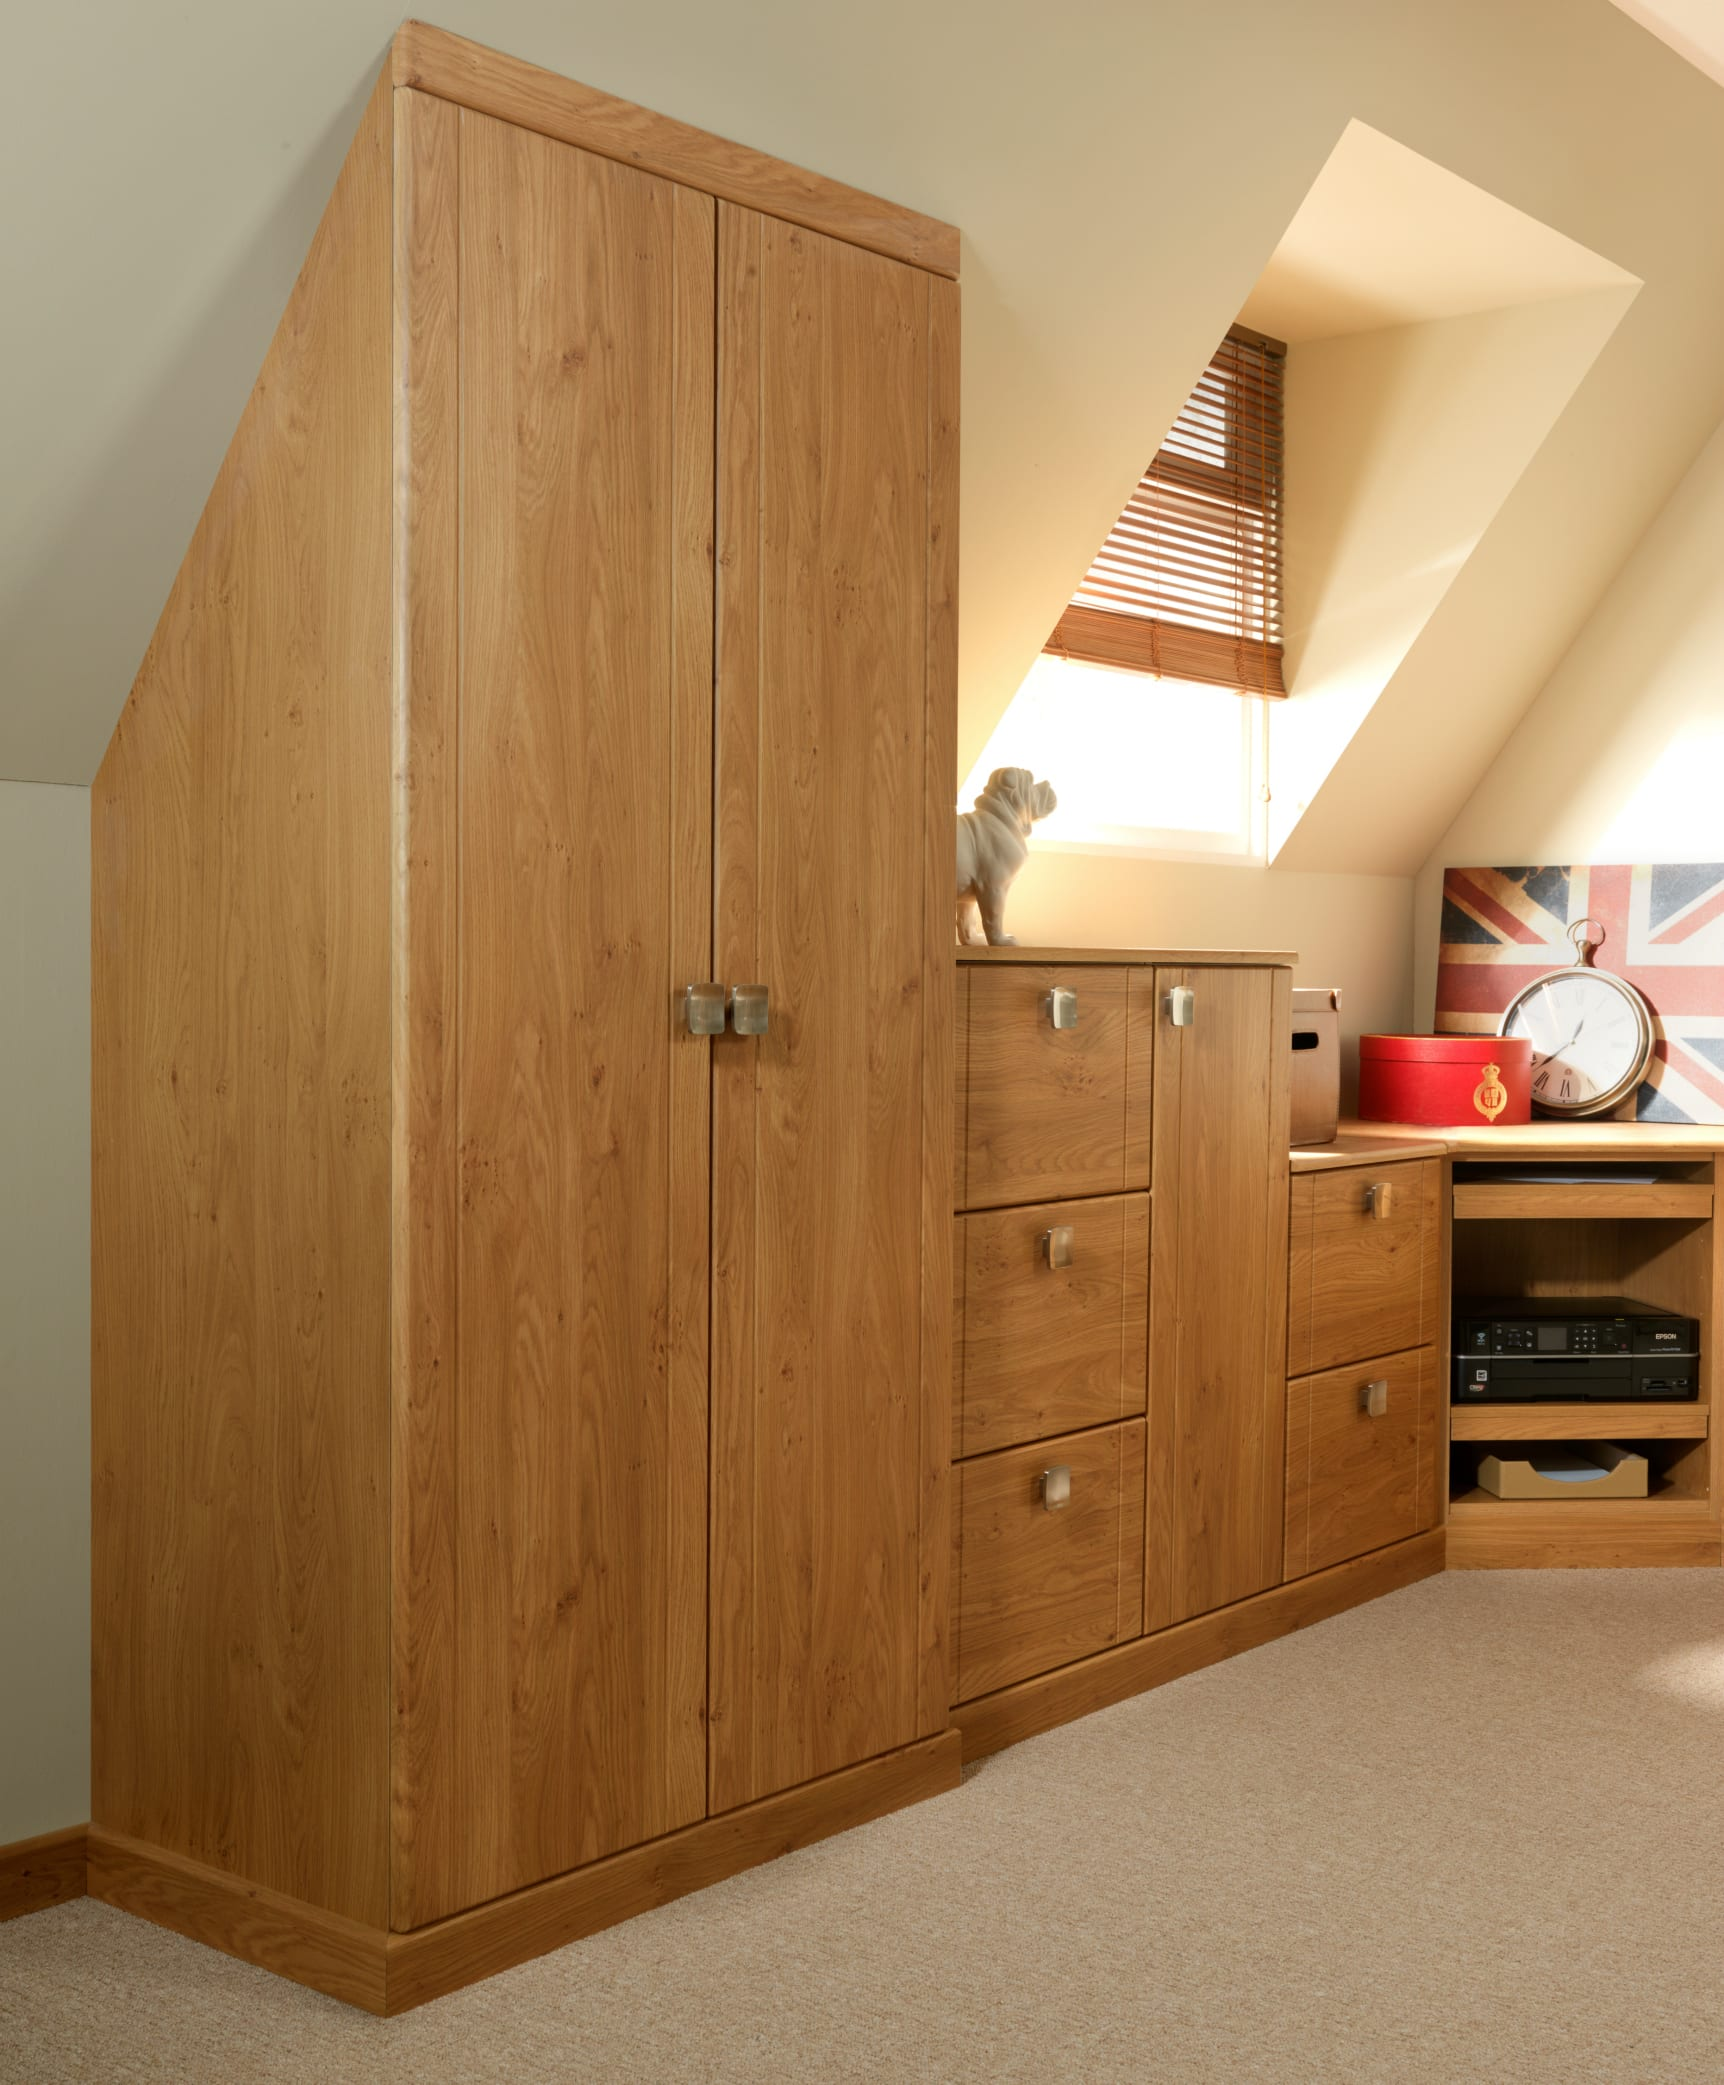 clawing back bedrooms ceiling your sloping wardrobe space against working architectural fitted hartleys oak homes with features office